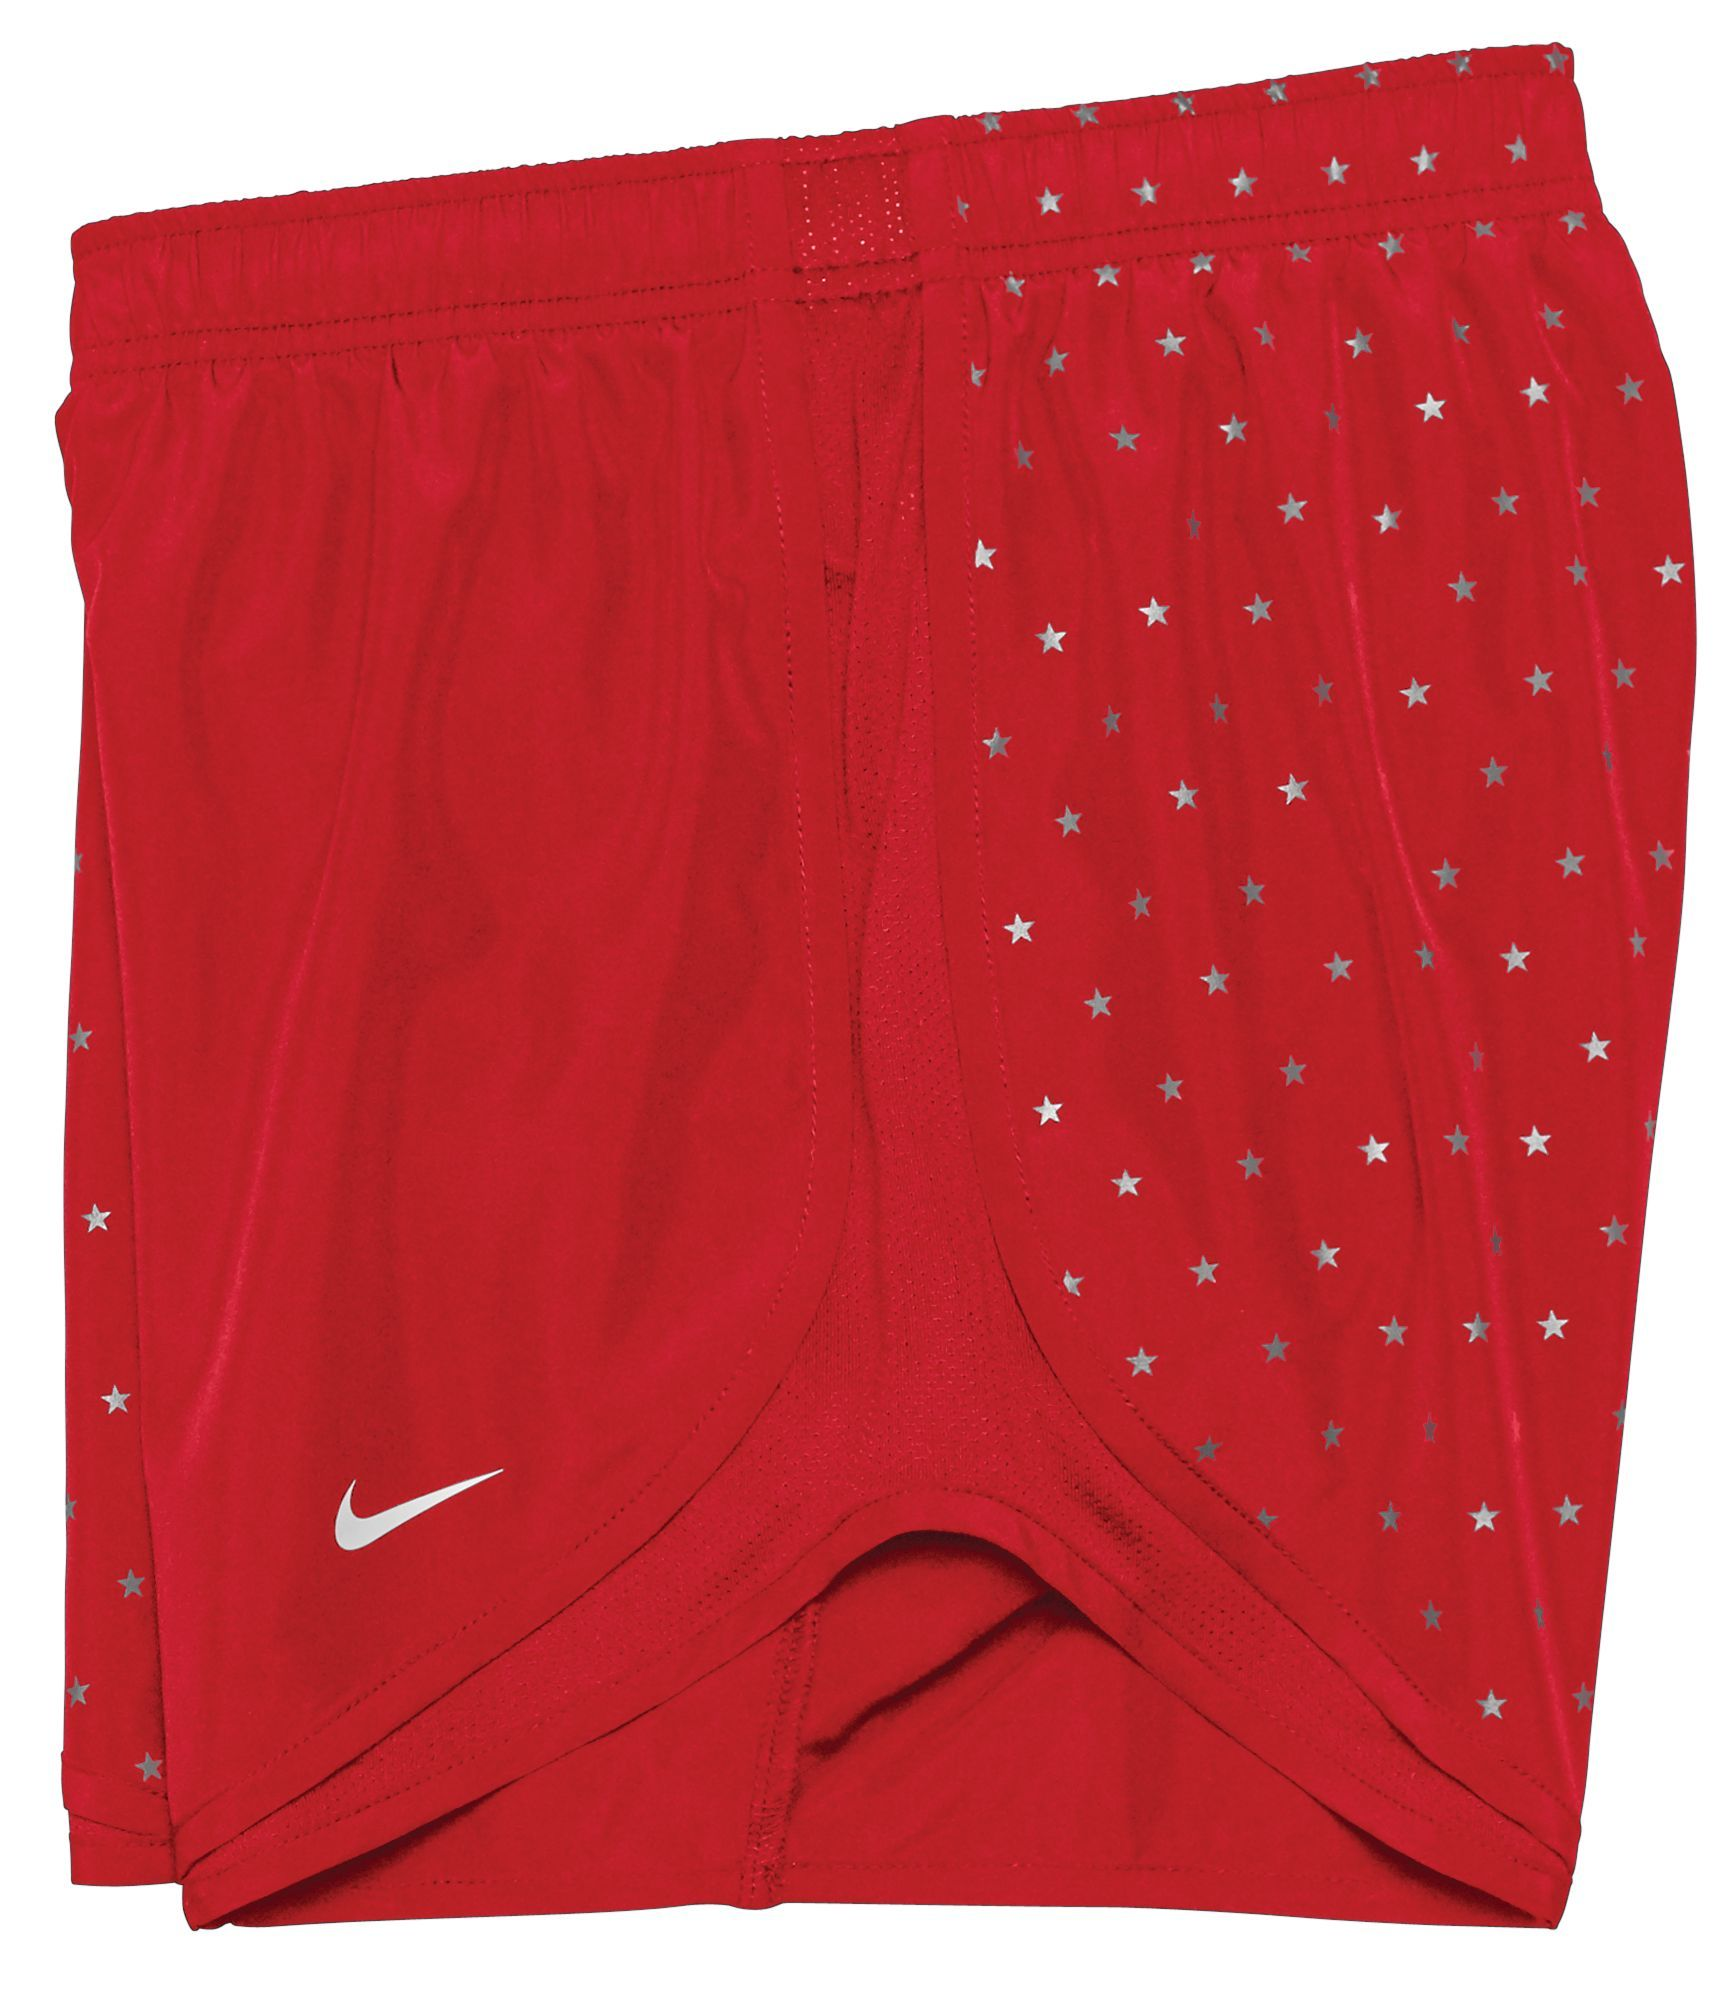 e4edd417b3ec4 Nike Women's Dry Tempo Americana 3'' Running Shorts | Products ...